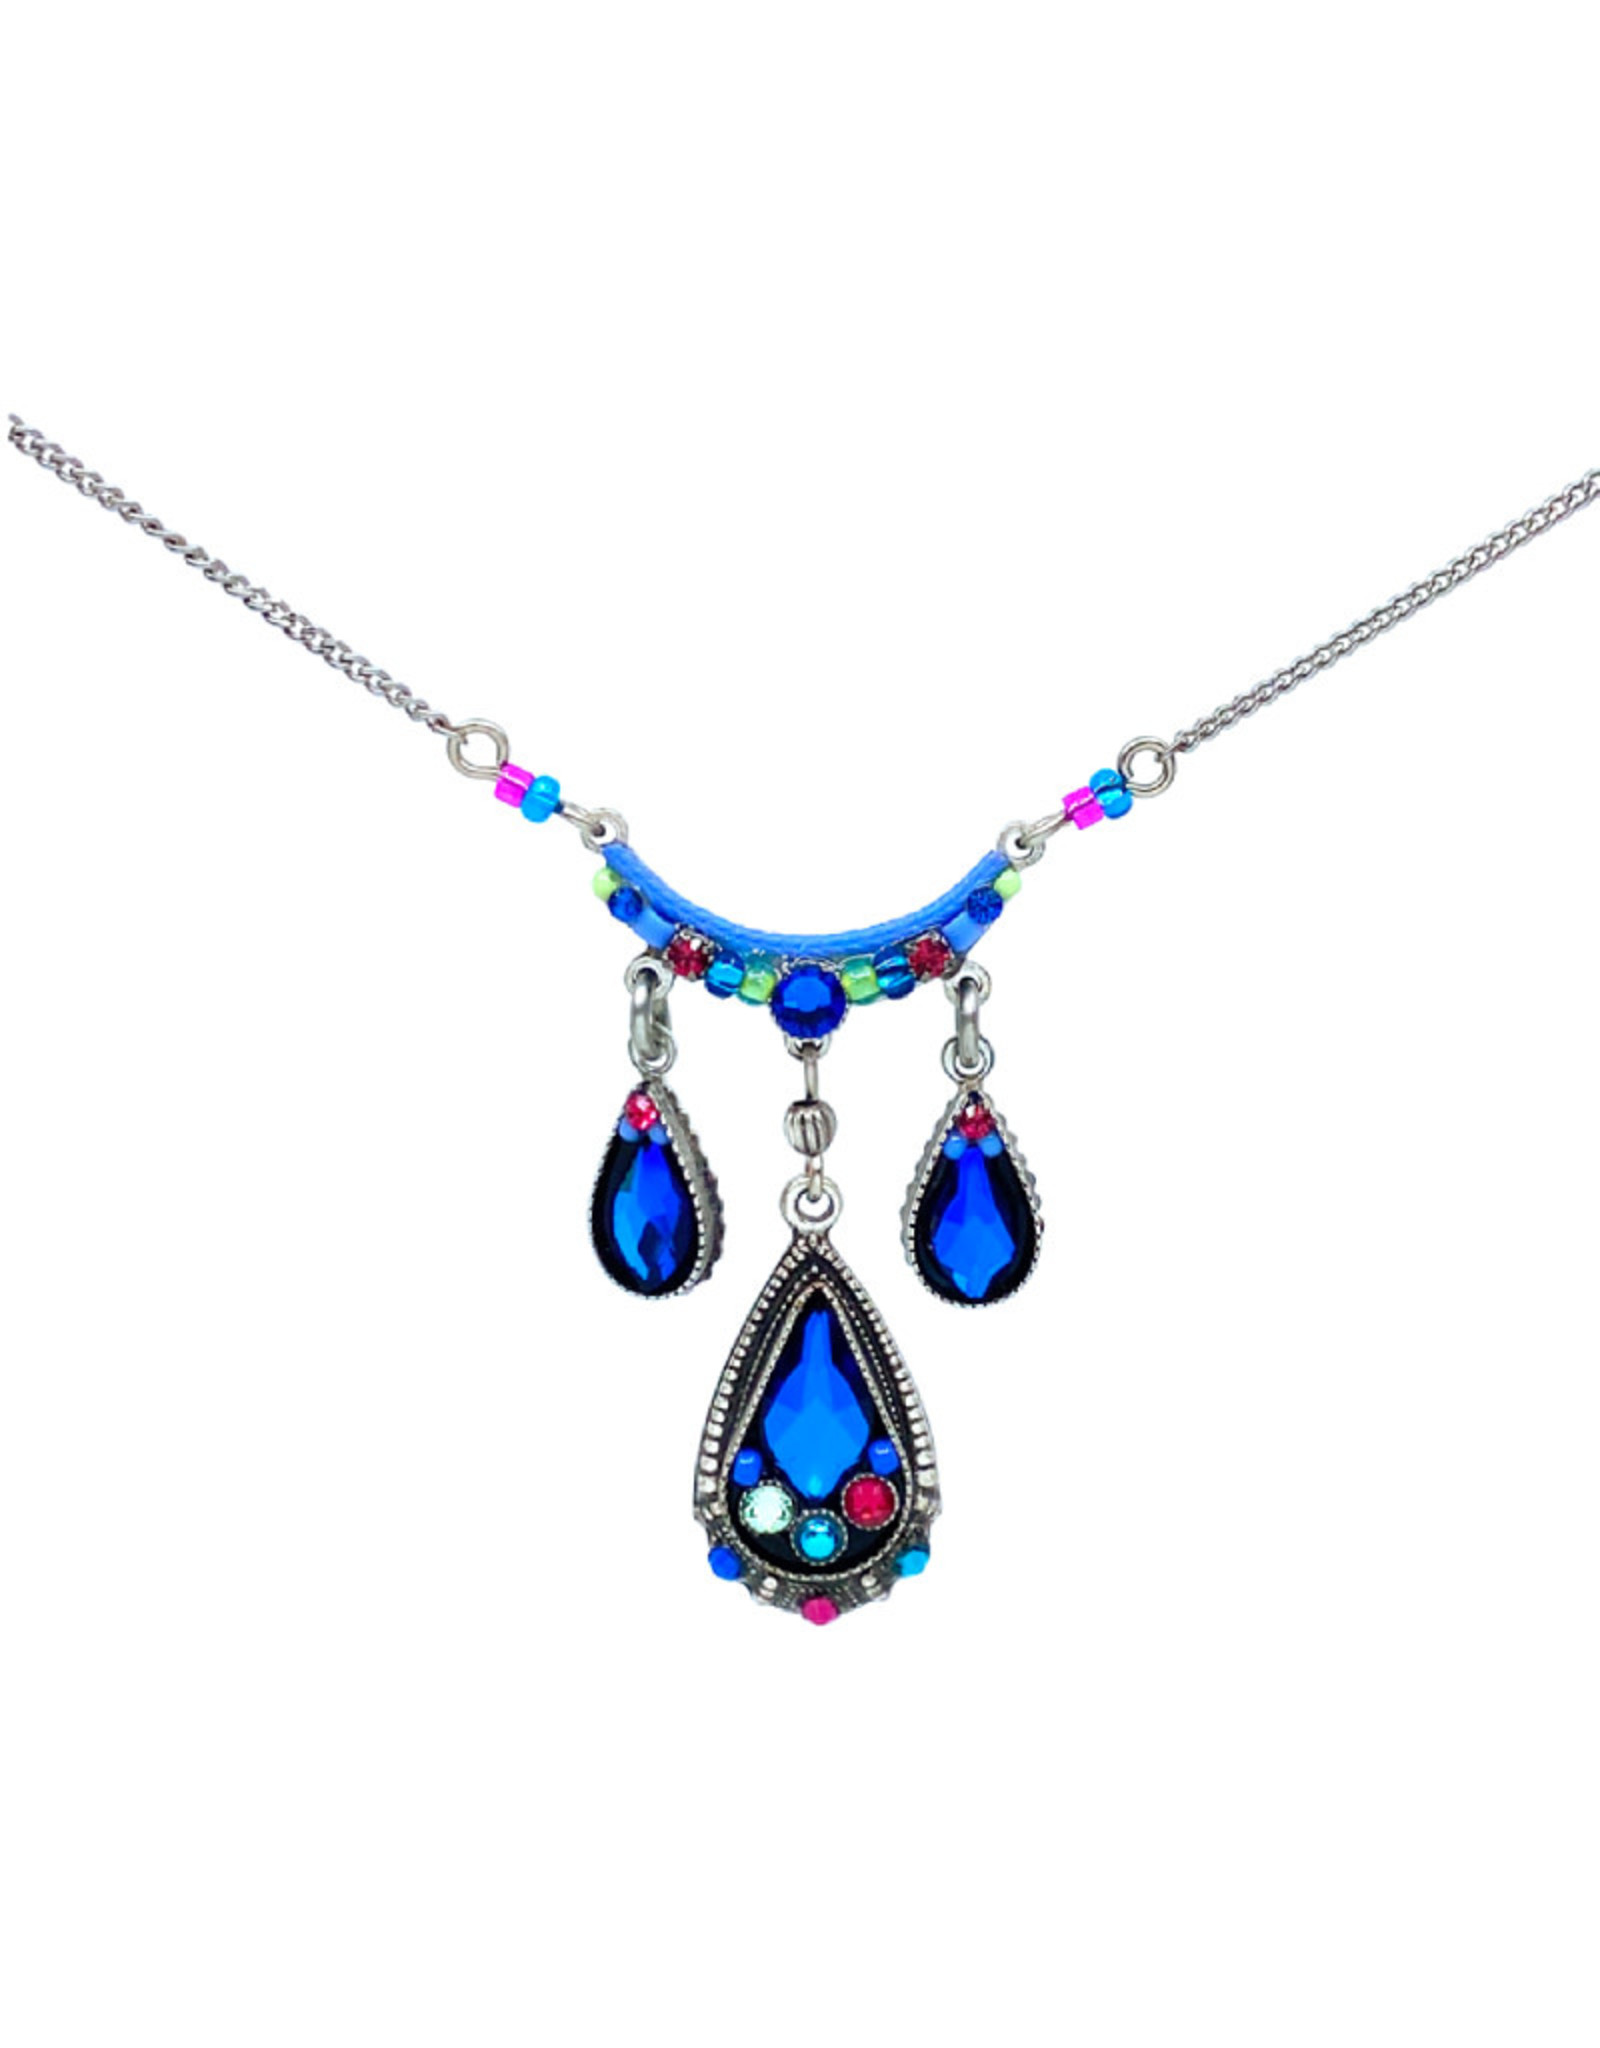 FIREFLY BERMUDA BLUE FLAME NECKLACE